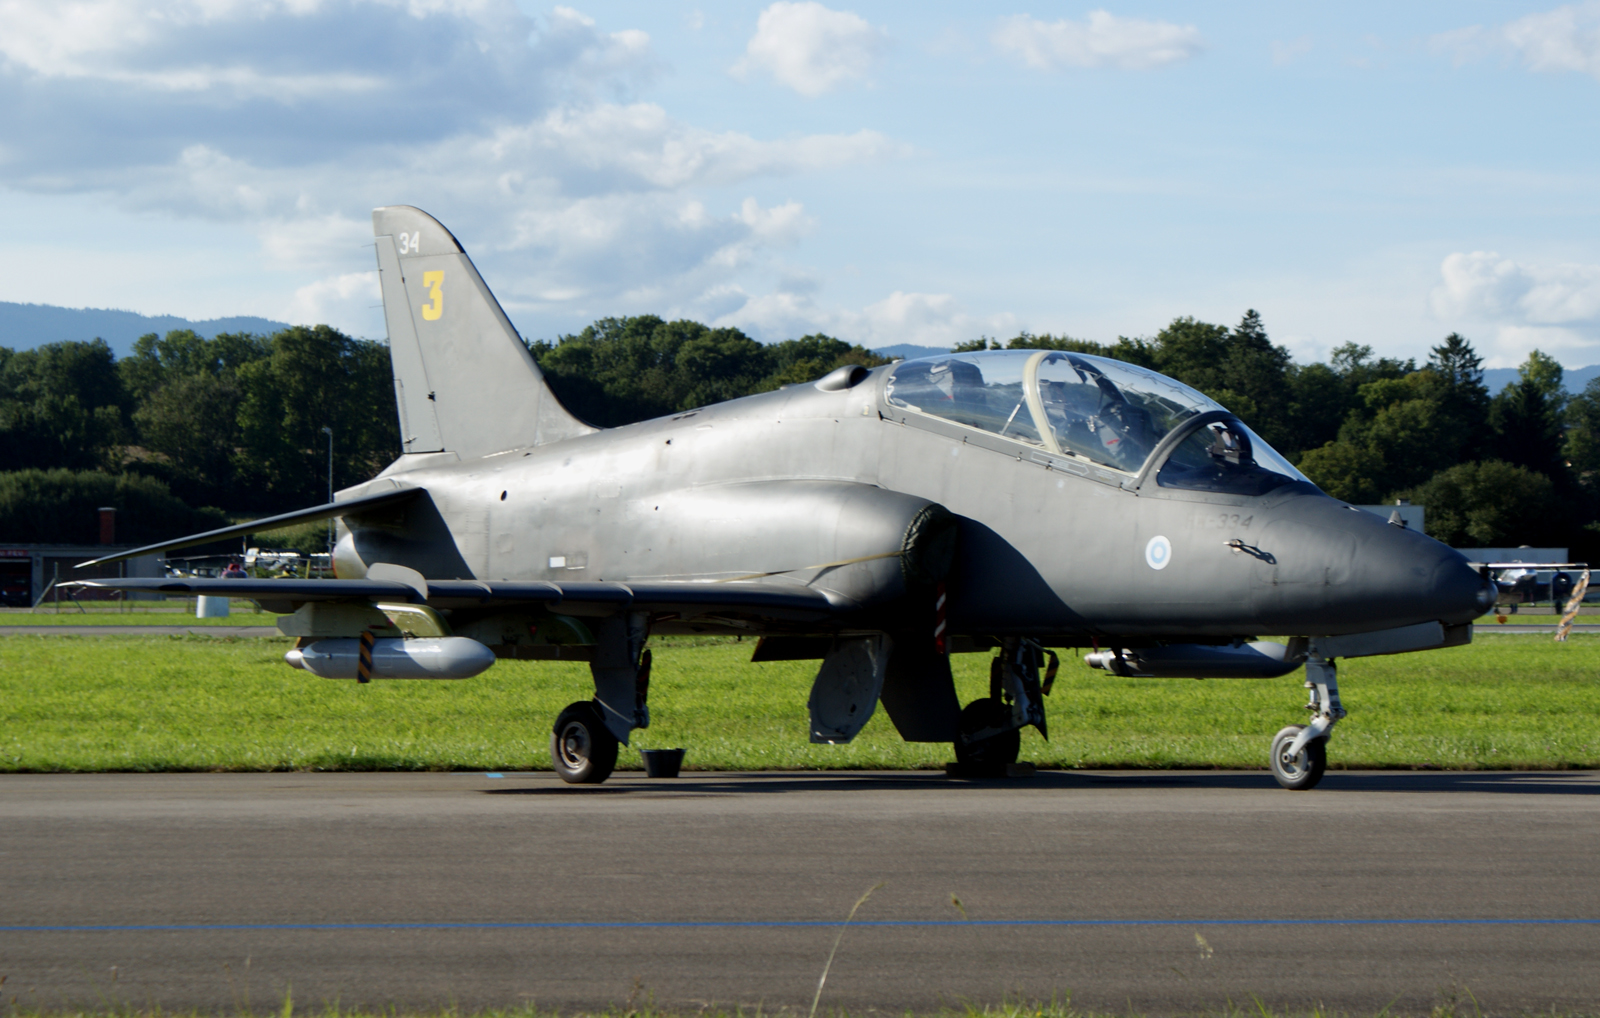 British Aerospace Hawk 51 HW-334 3 Finnish Air Force